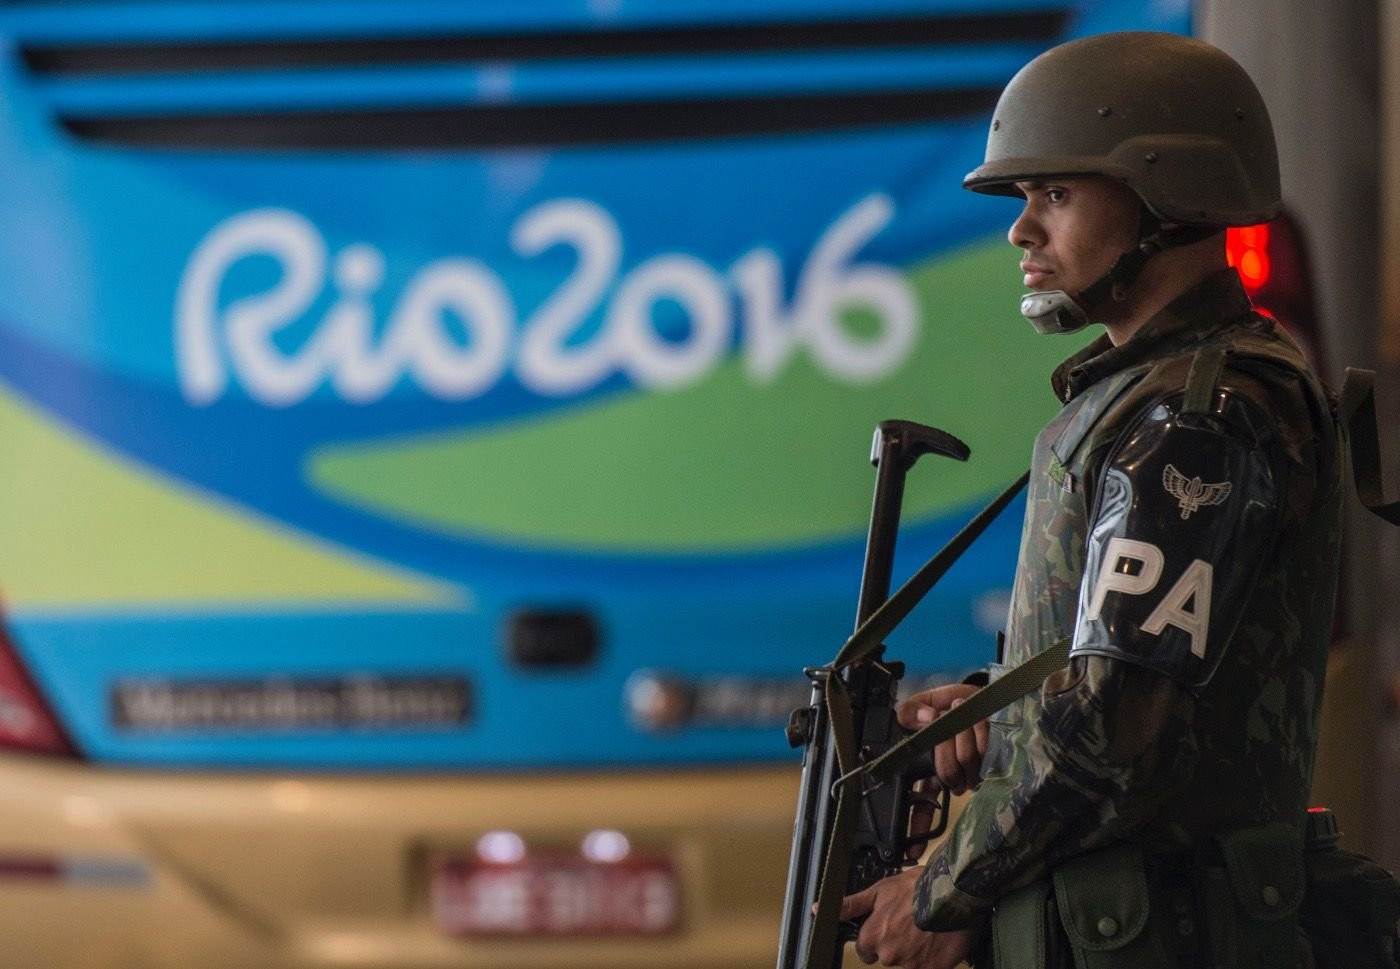 Rio 2016 Reaches Stage 5 of Preparations for Possible Terrorist Attacks